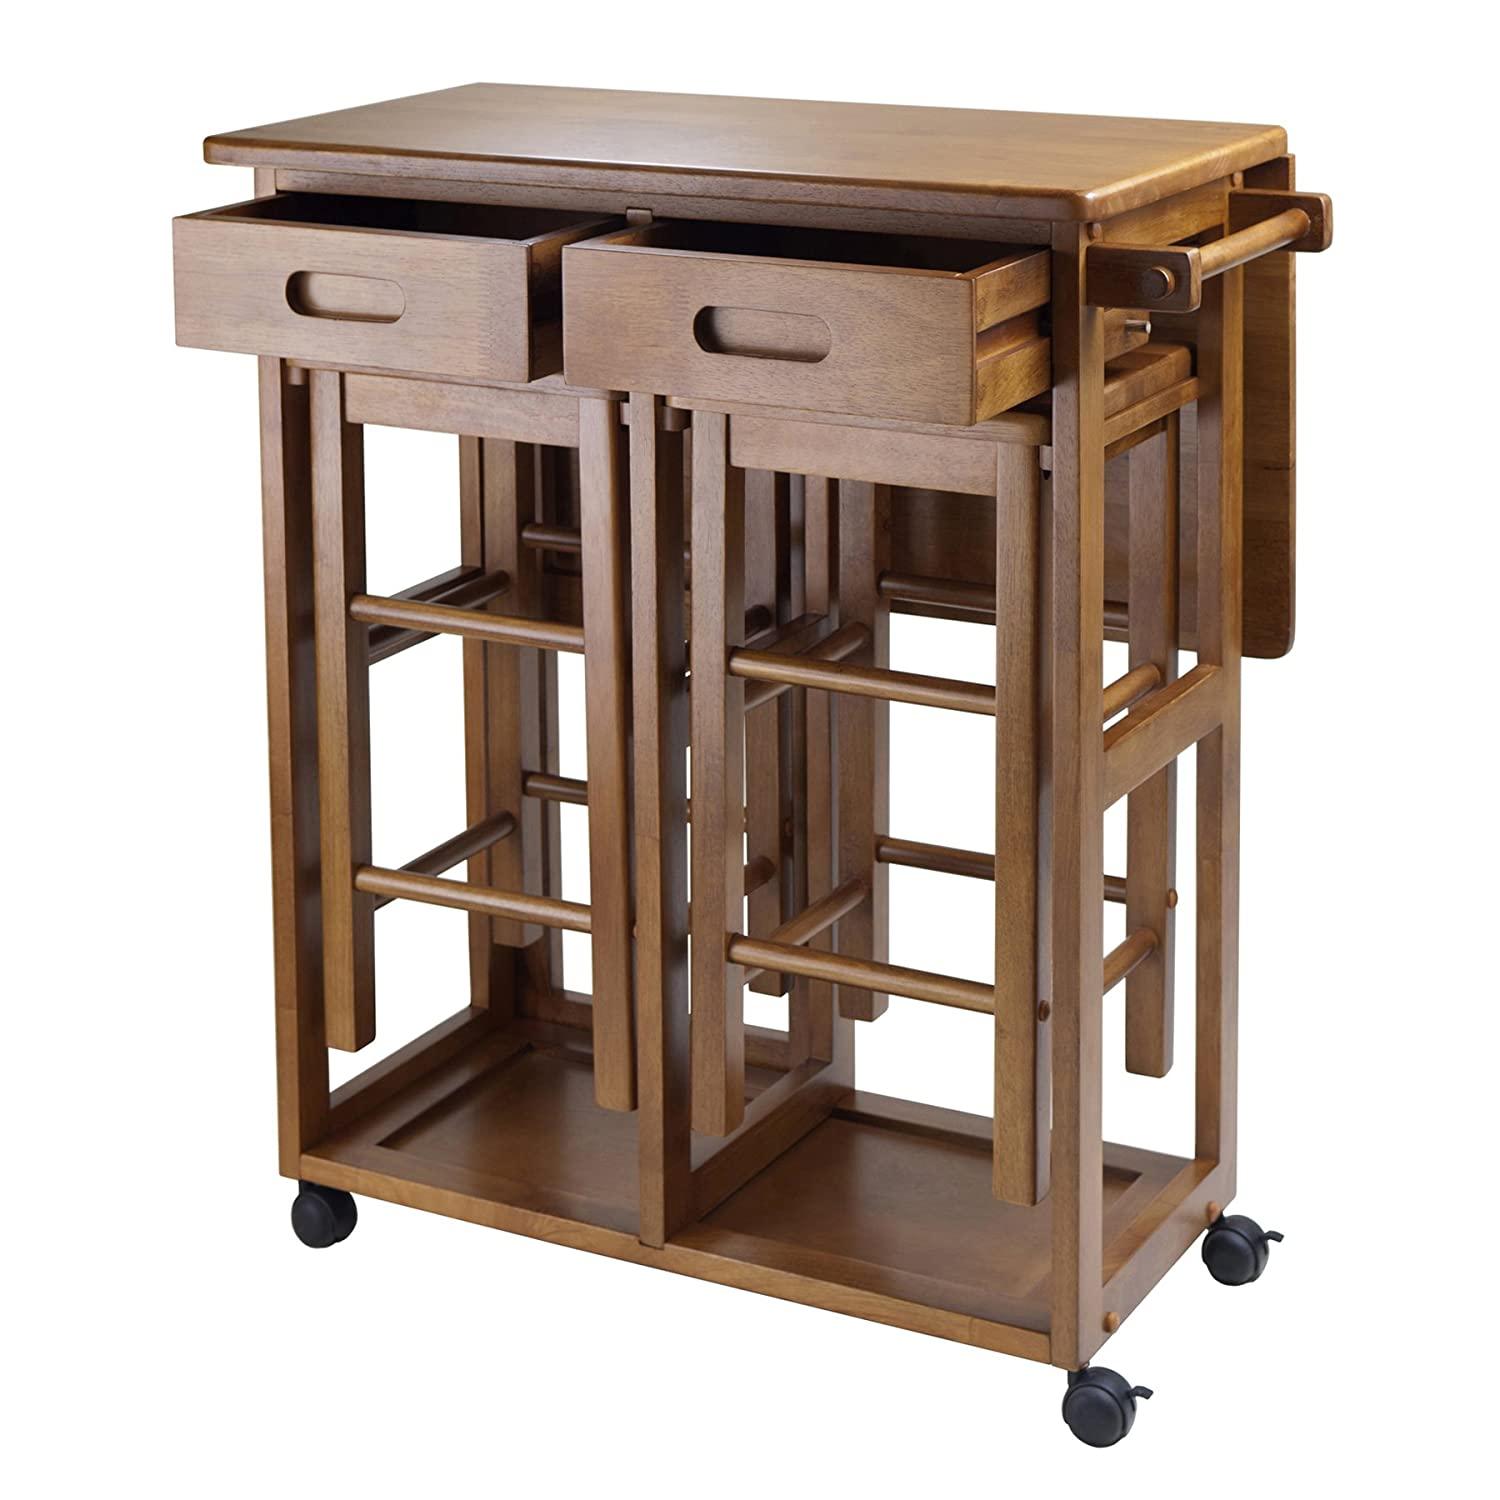 B drop leaf kitchen tables Amazon com Winsome Space Saver with 2 Stools Square Kitchen Dining